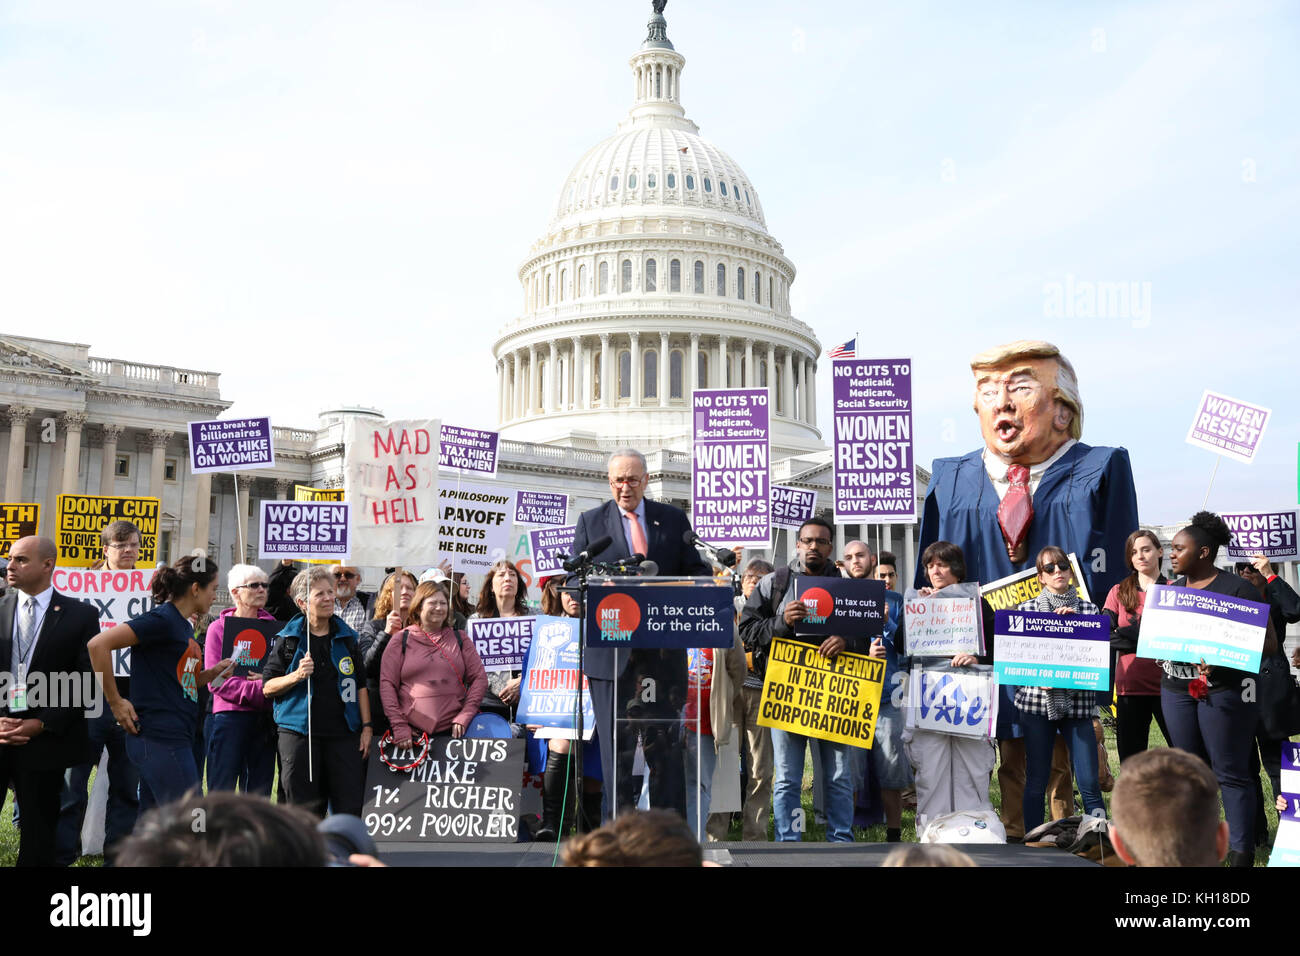 U.S. Senate Minority Leader Chuck Schumer speaks during a Democratic rally in opposition to the Republican Tax plan - Stock Image